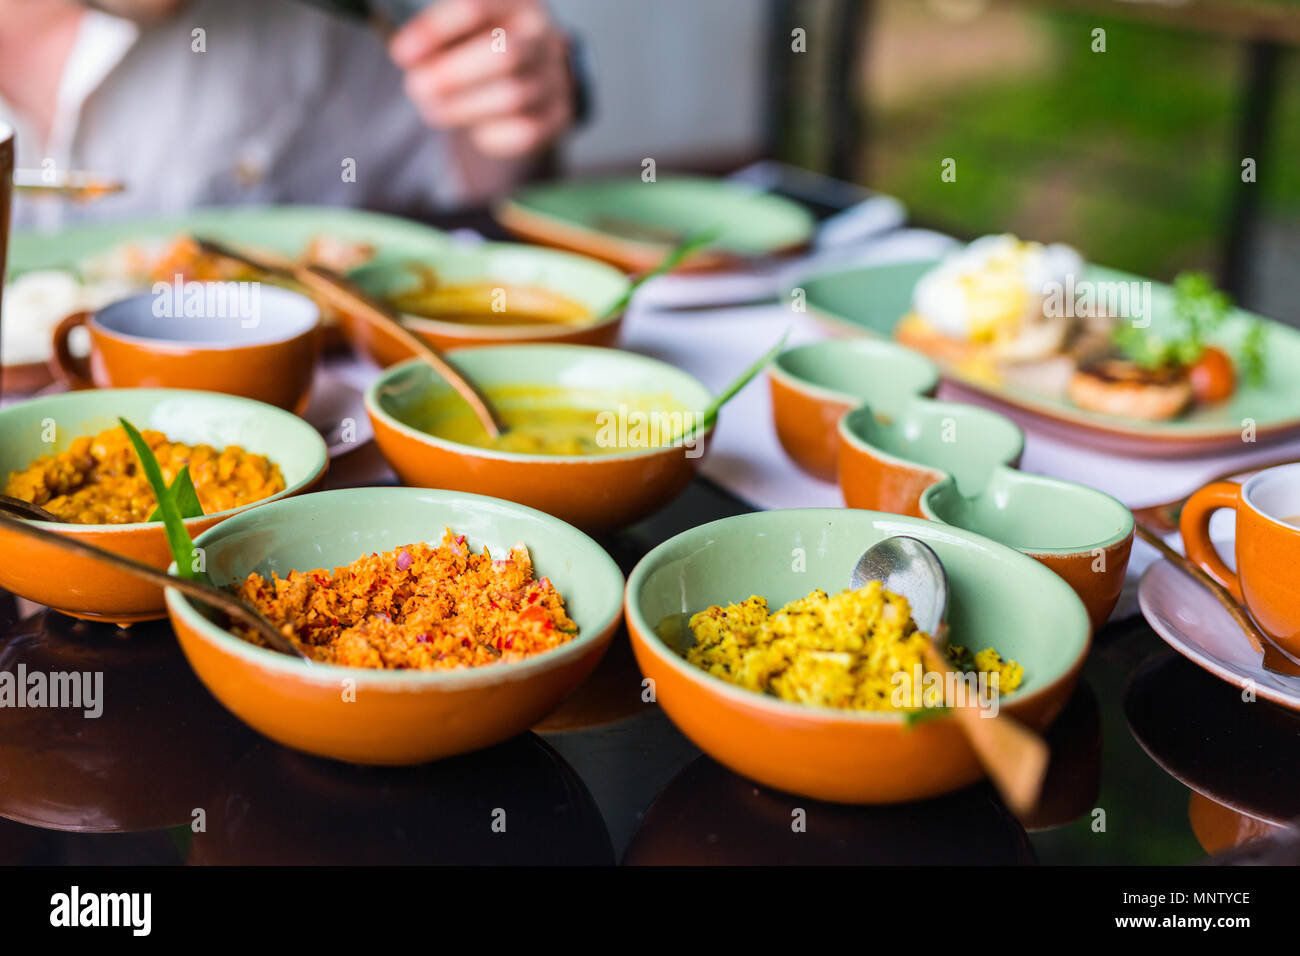 Coconut sambal and curry close up on table with Sri Lankan food - Stock Image